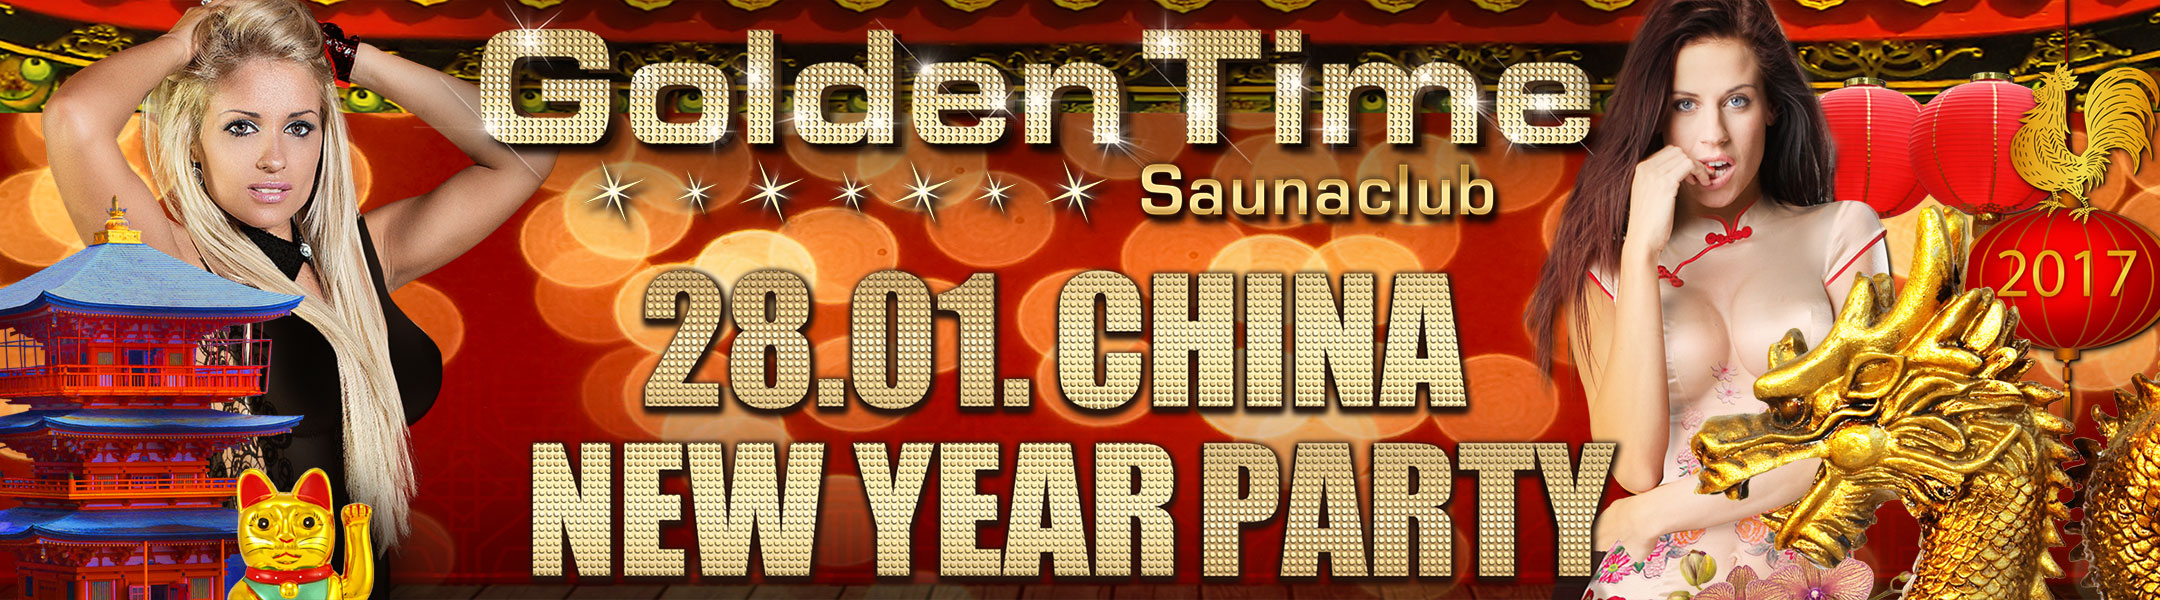 China New Year Party am 28.01.2017 im GoldenTime FKK Saunaclub